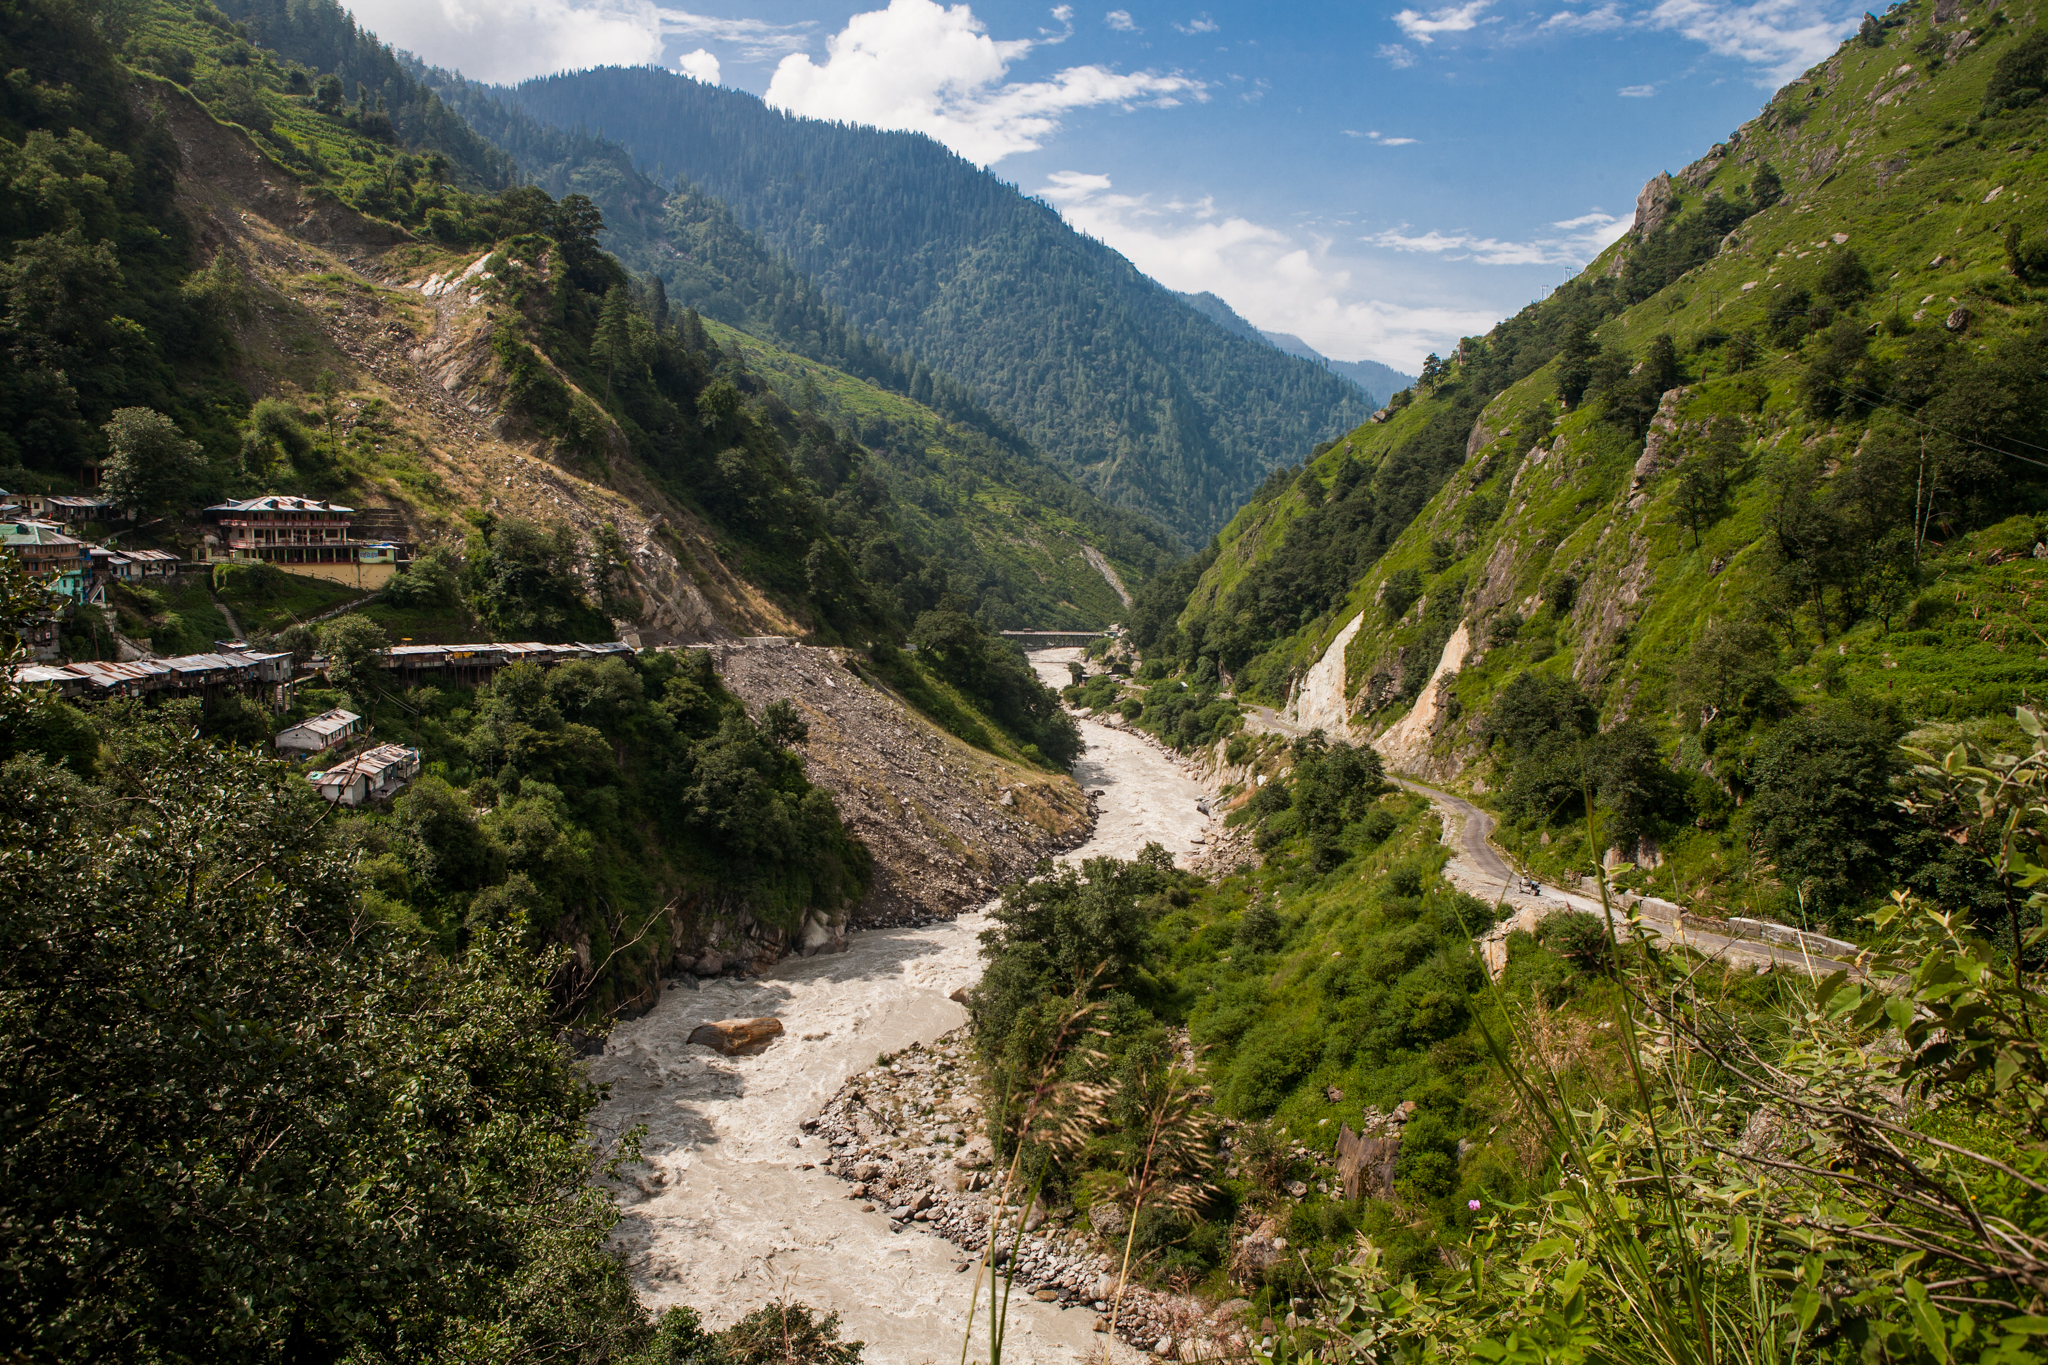 The roads in the Himalayan mountains in Uttarakhand, India